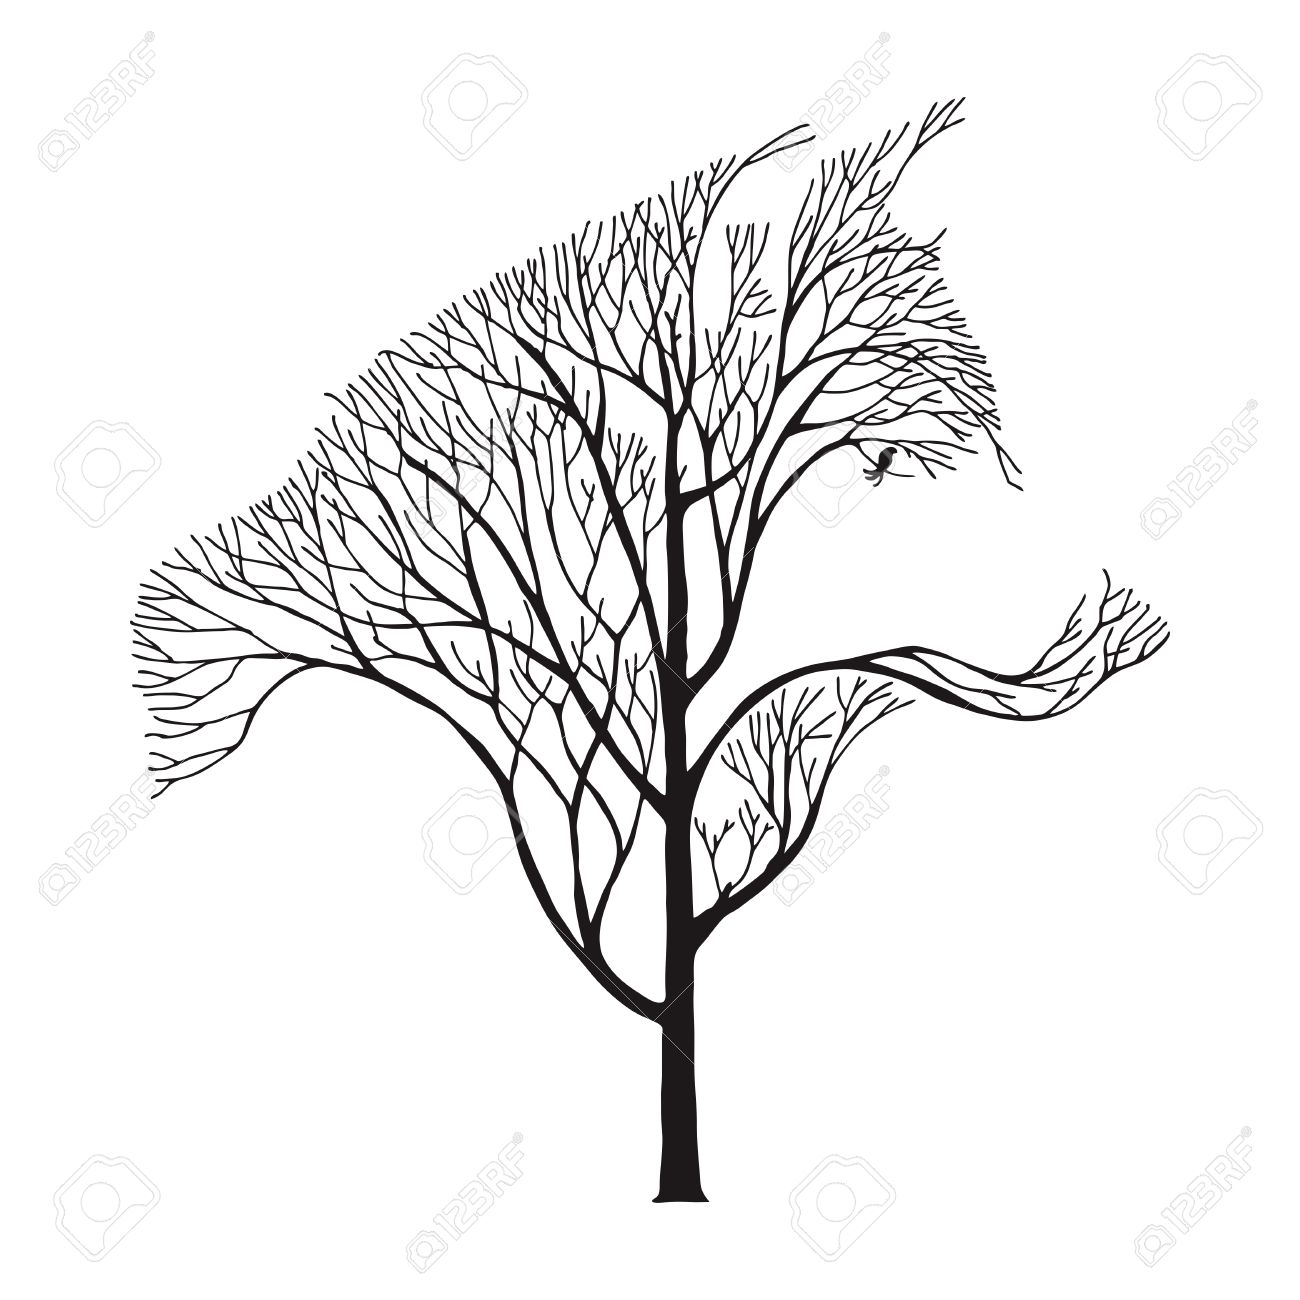 Tree Drawing Tattoo at GetDrawings com | Free for personal